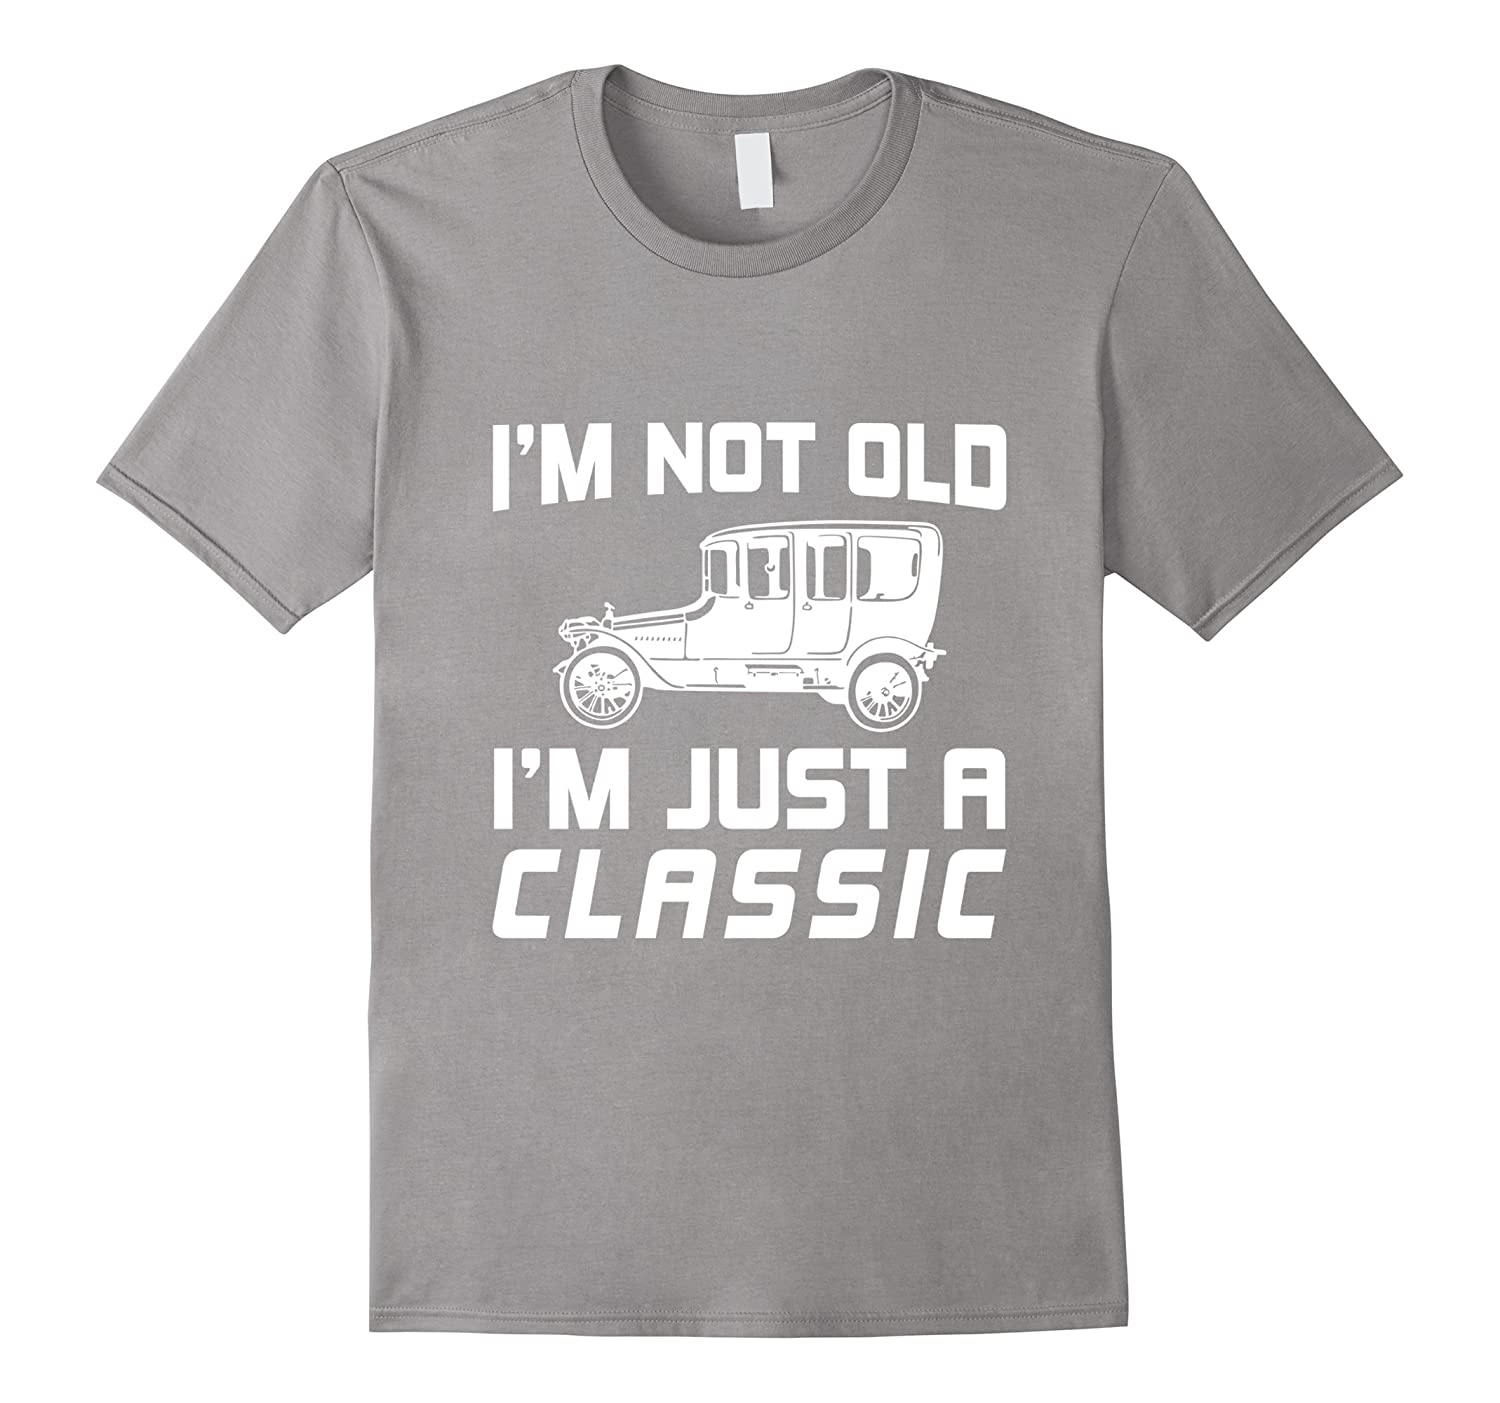 c7b55cc1 Im Not Old Just Classic Car T-Shirt Funny Quote Saying Gift-TD ...